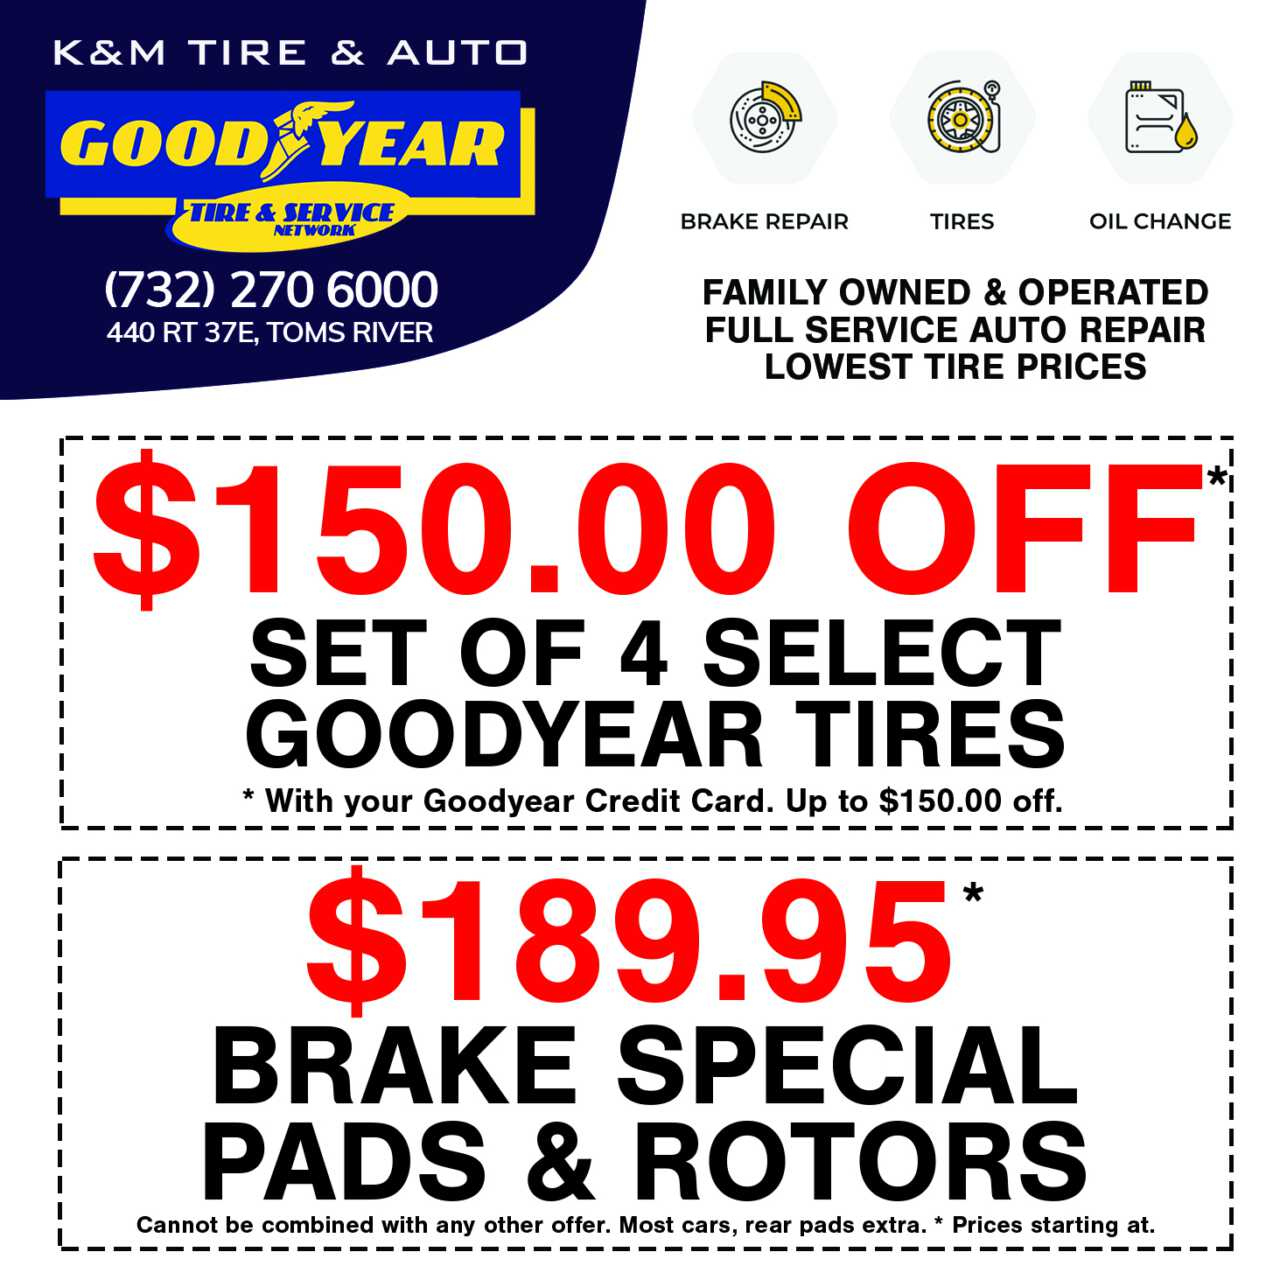 K&M Tire And Auto - Goodyear Tire & Service $150.00 off Set of 4 Select Goodyear Tires Ad, $189.95 Brake Special Pads & Rotors